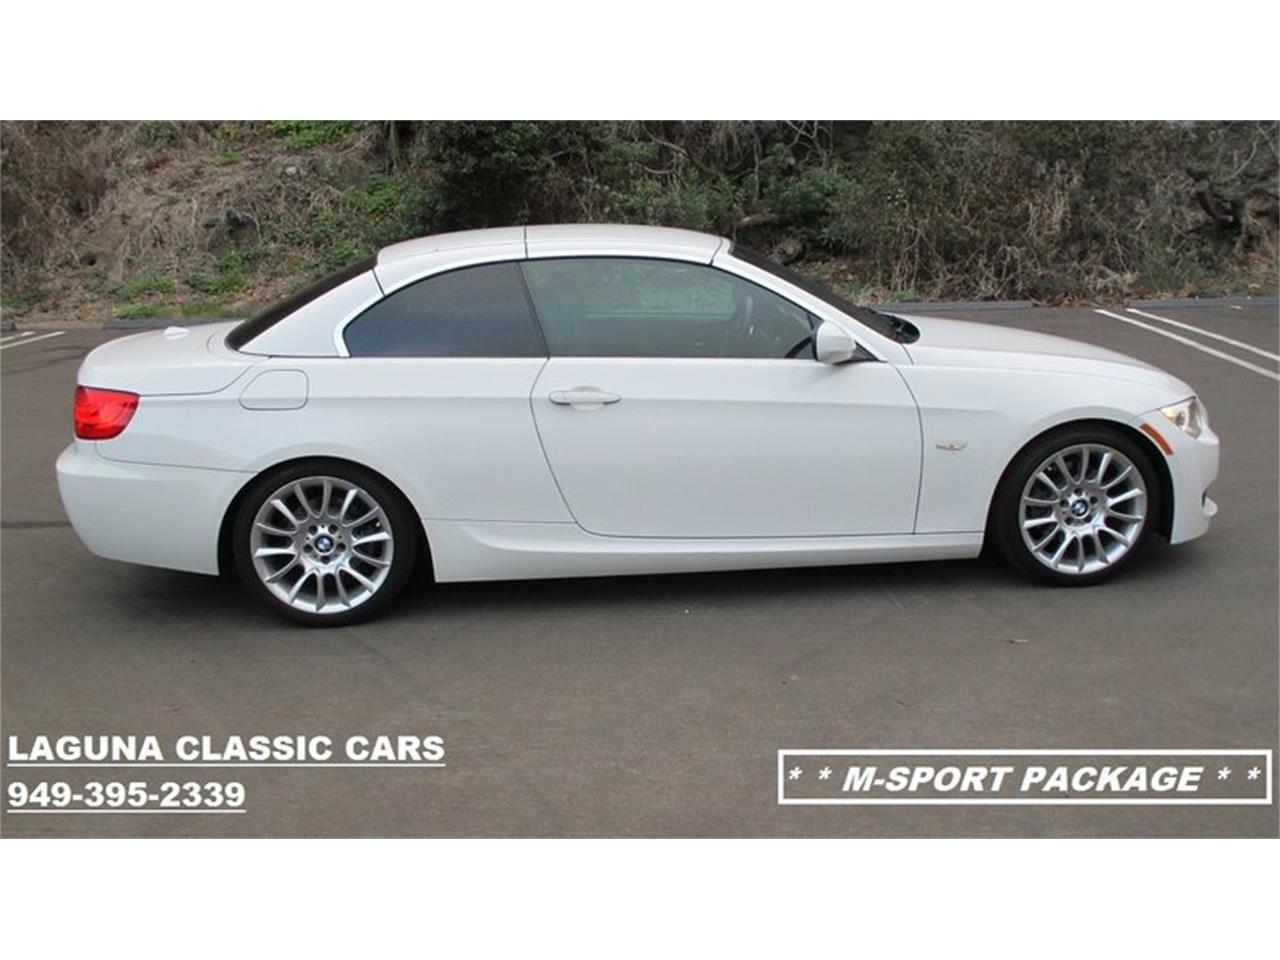 Large Picture of 2011 BMW 328i located in Laguna Beach California Offered by Laguna Classic Cars - MGK0